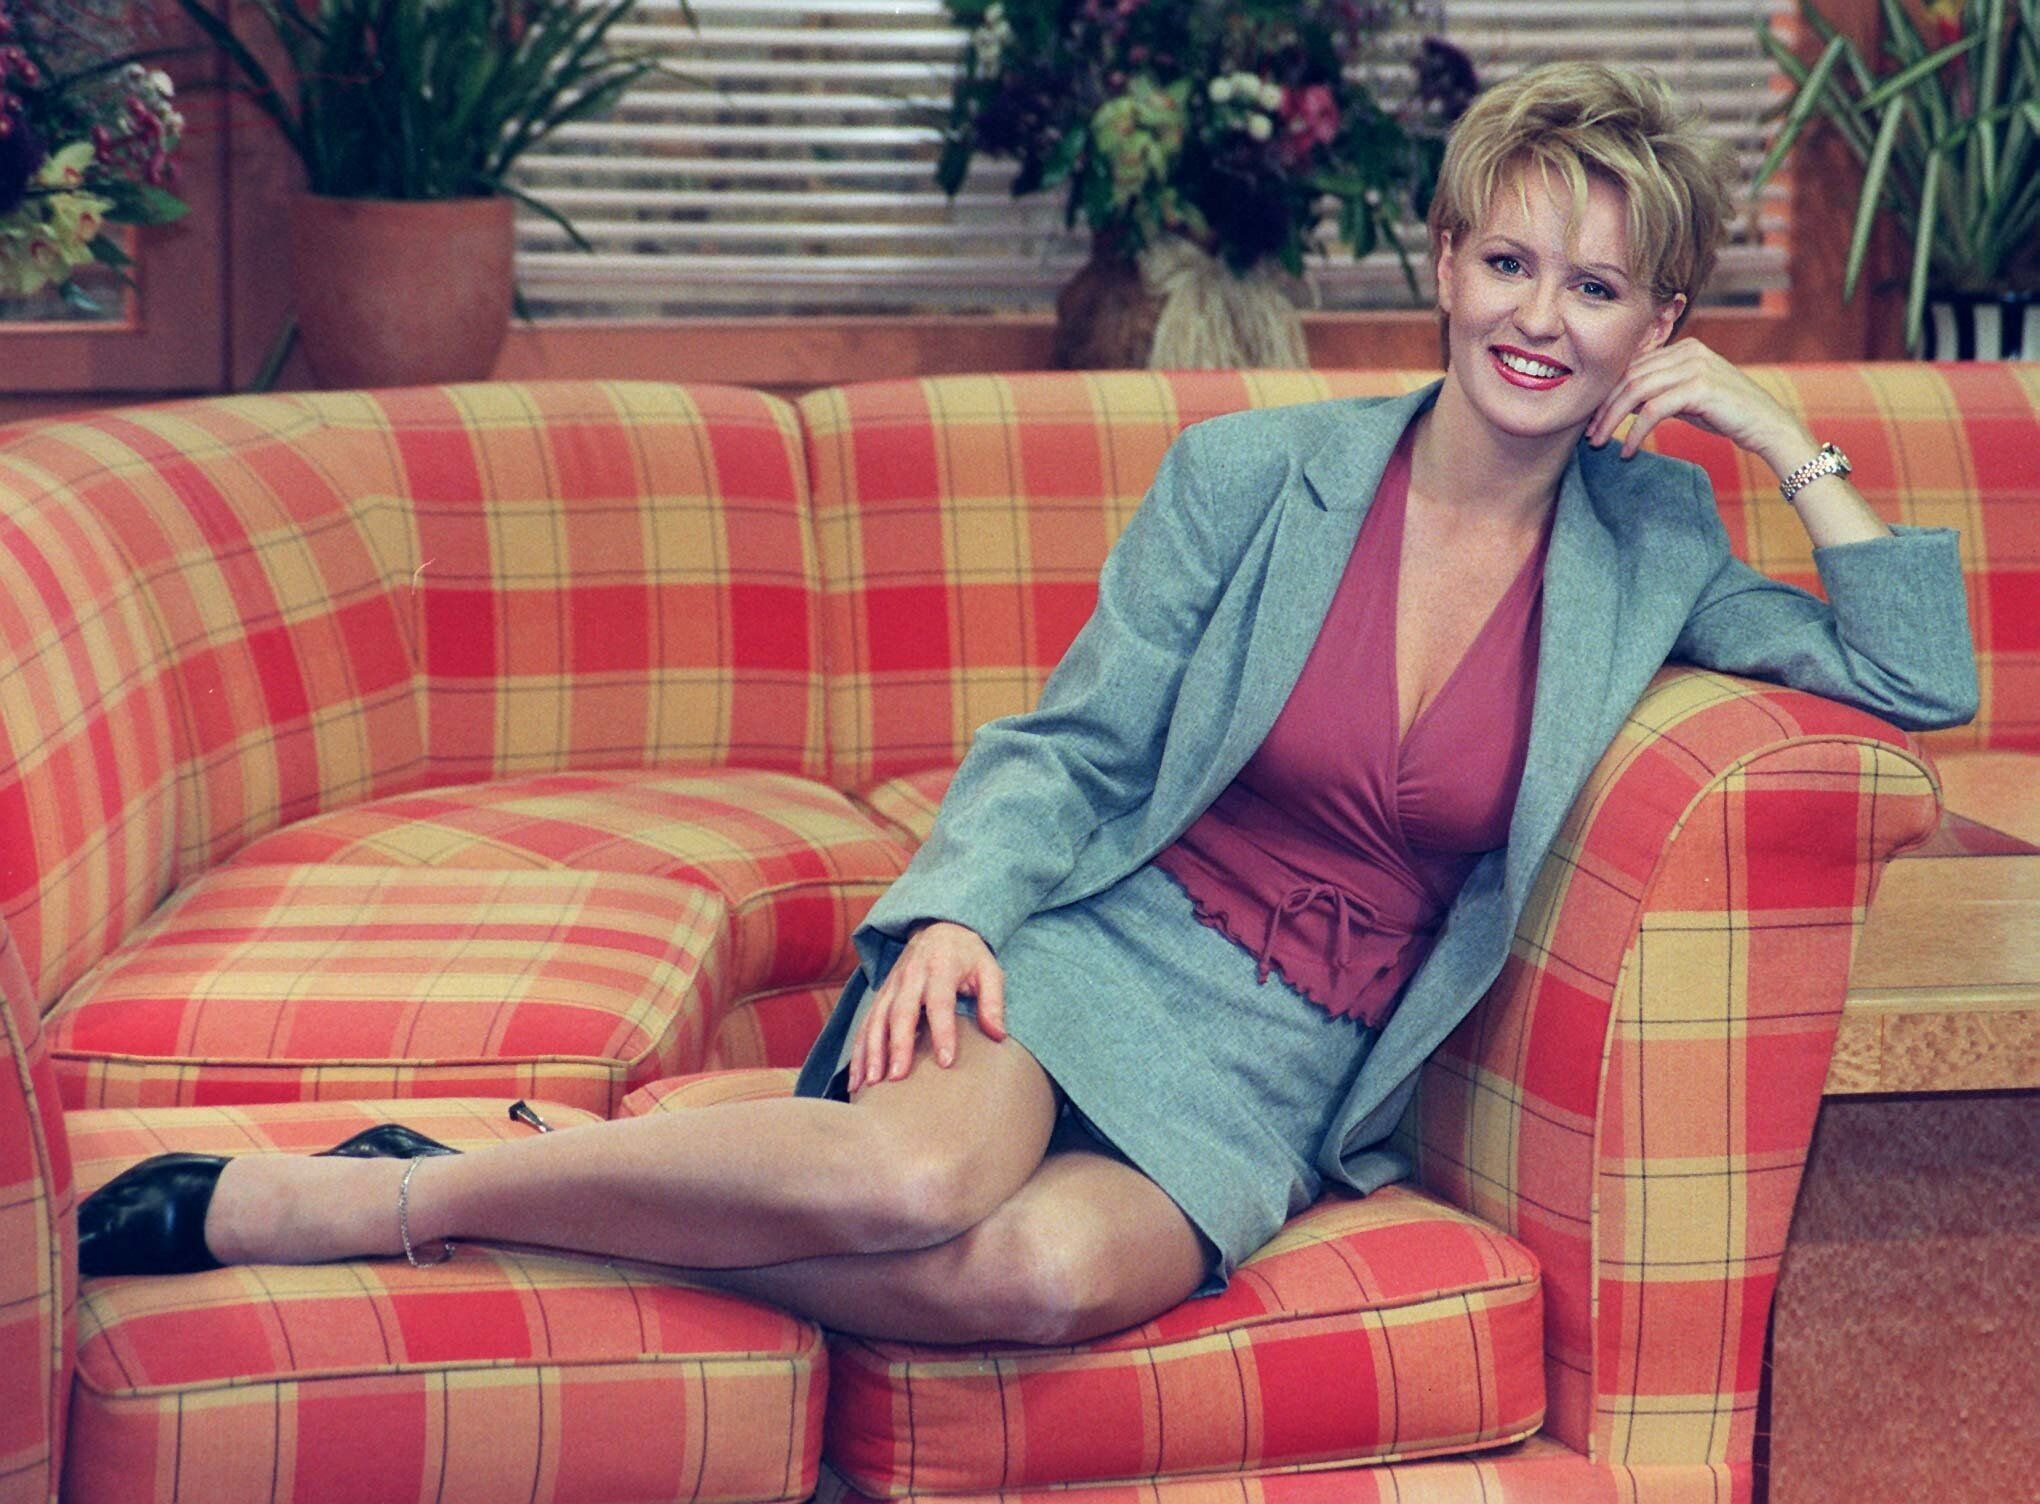 Esther McVey tries out the GMTV couch, at the breakfast station, as she prepares to take over from presenter Fiona Phillips who is taking maternity leave. Fiona, who is married to GMTV's chief correspondent, Martin Frizell, is expecting her first child in May.   * and will leave the station on April 9.